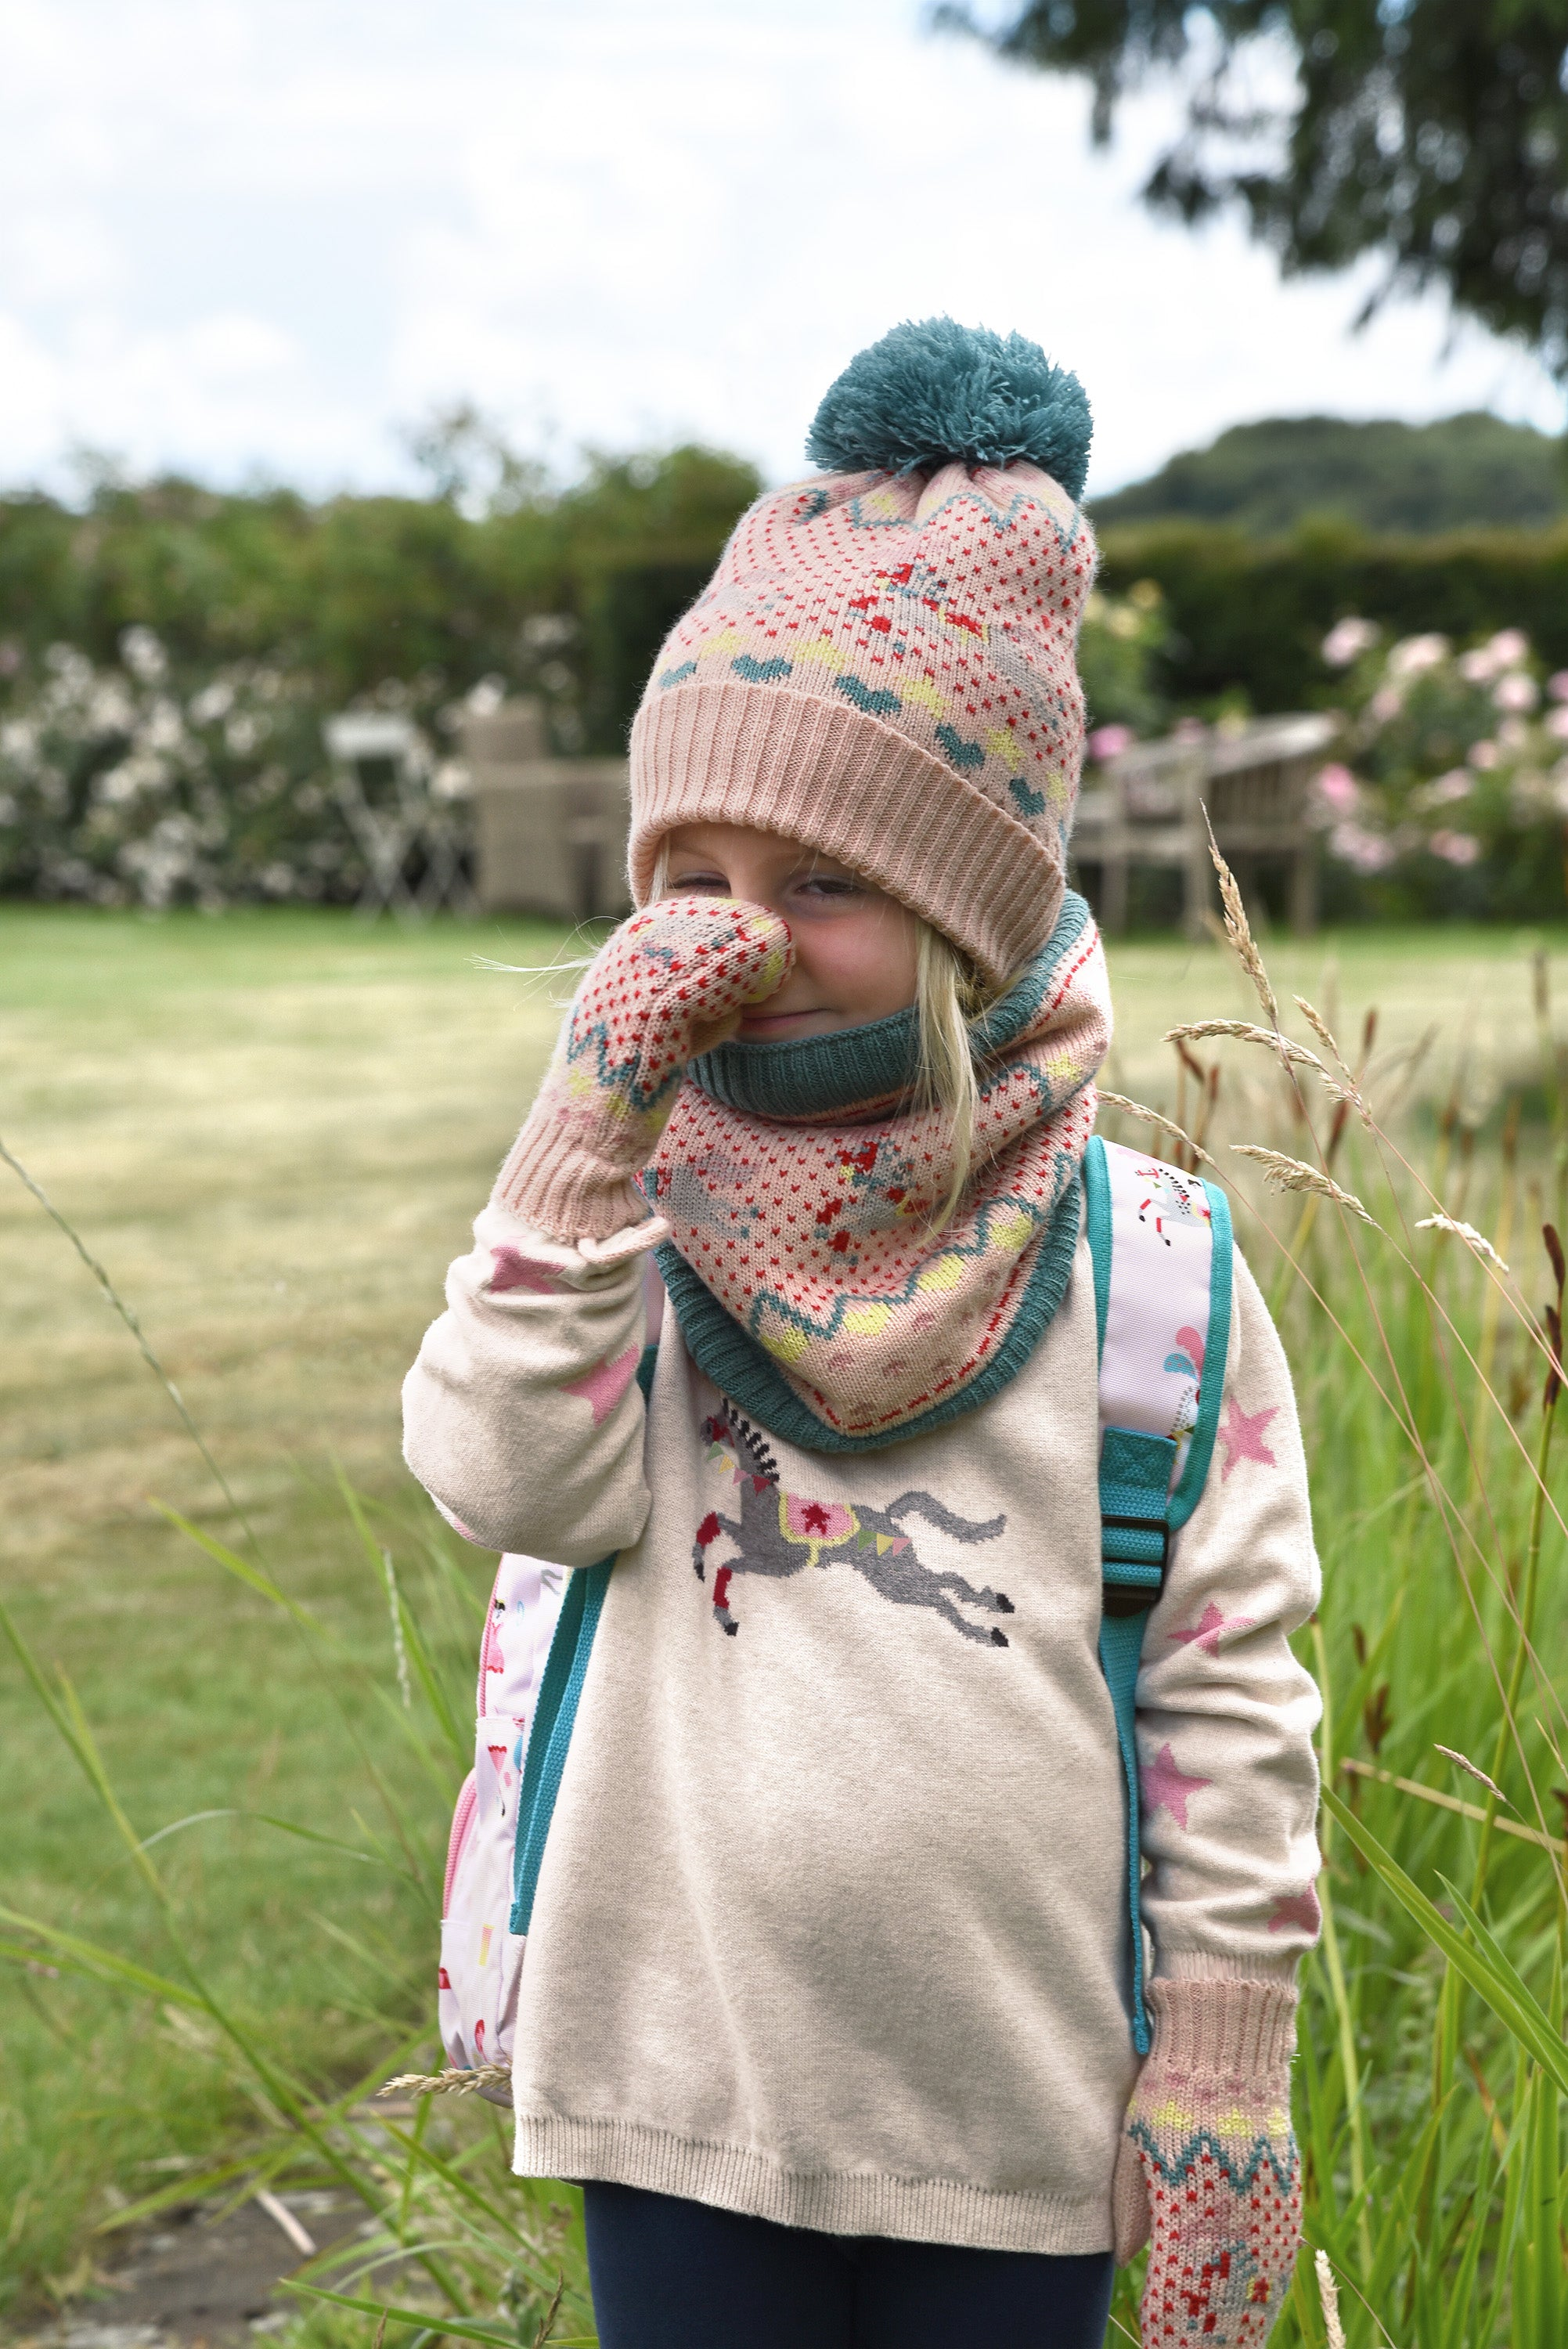 Fairground Knitwear, hat, scarf, mittens and jumper by Sophie Allport